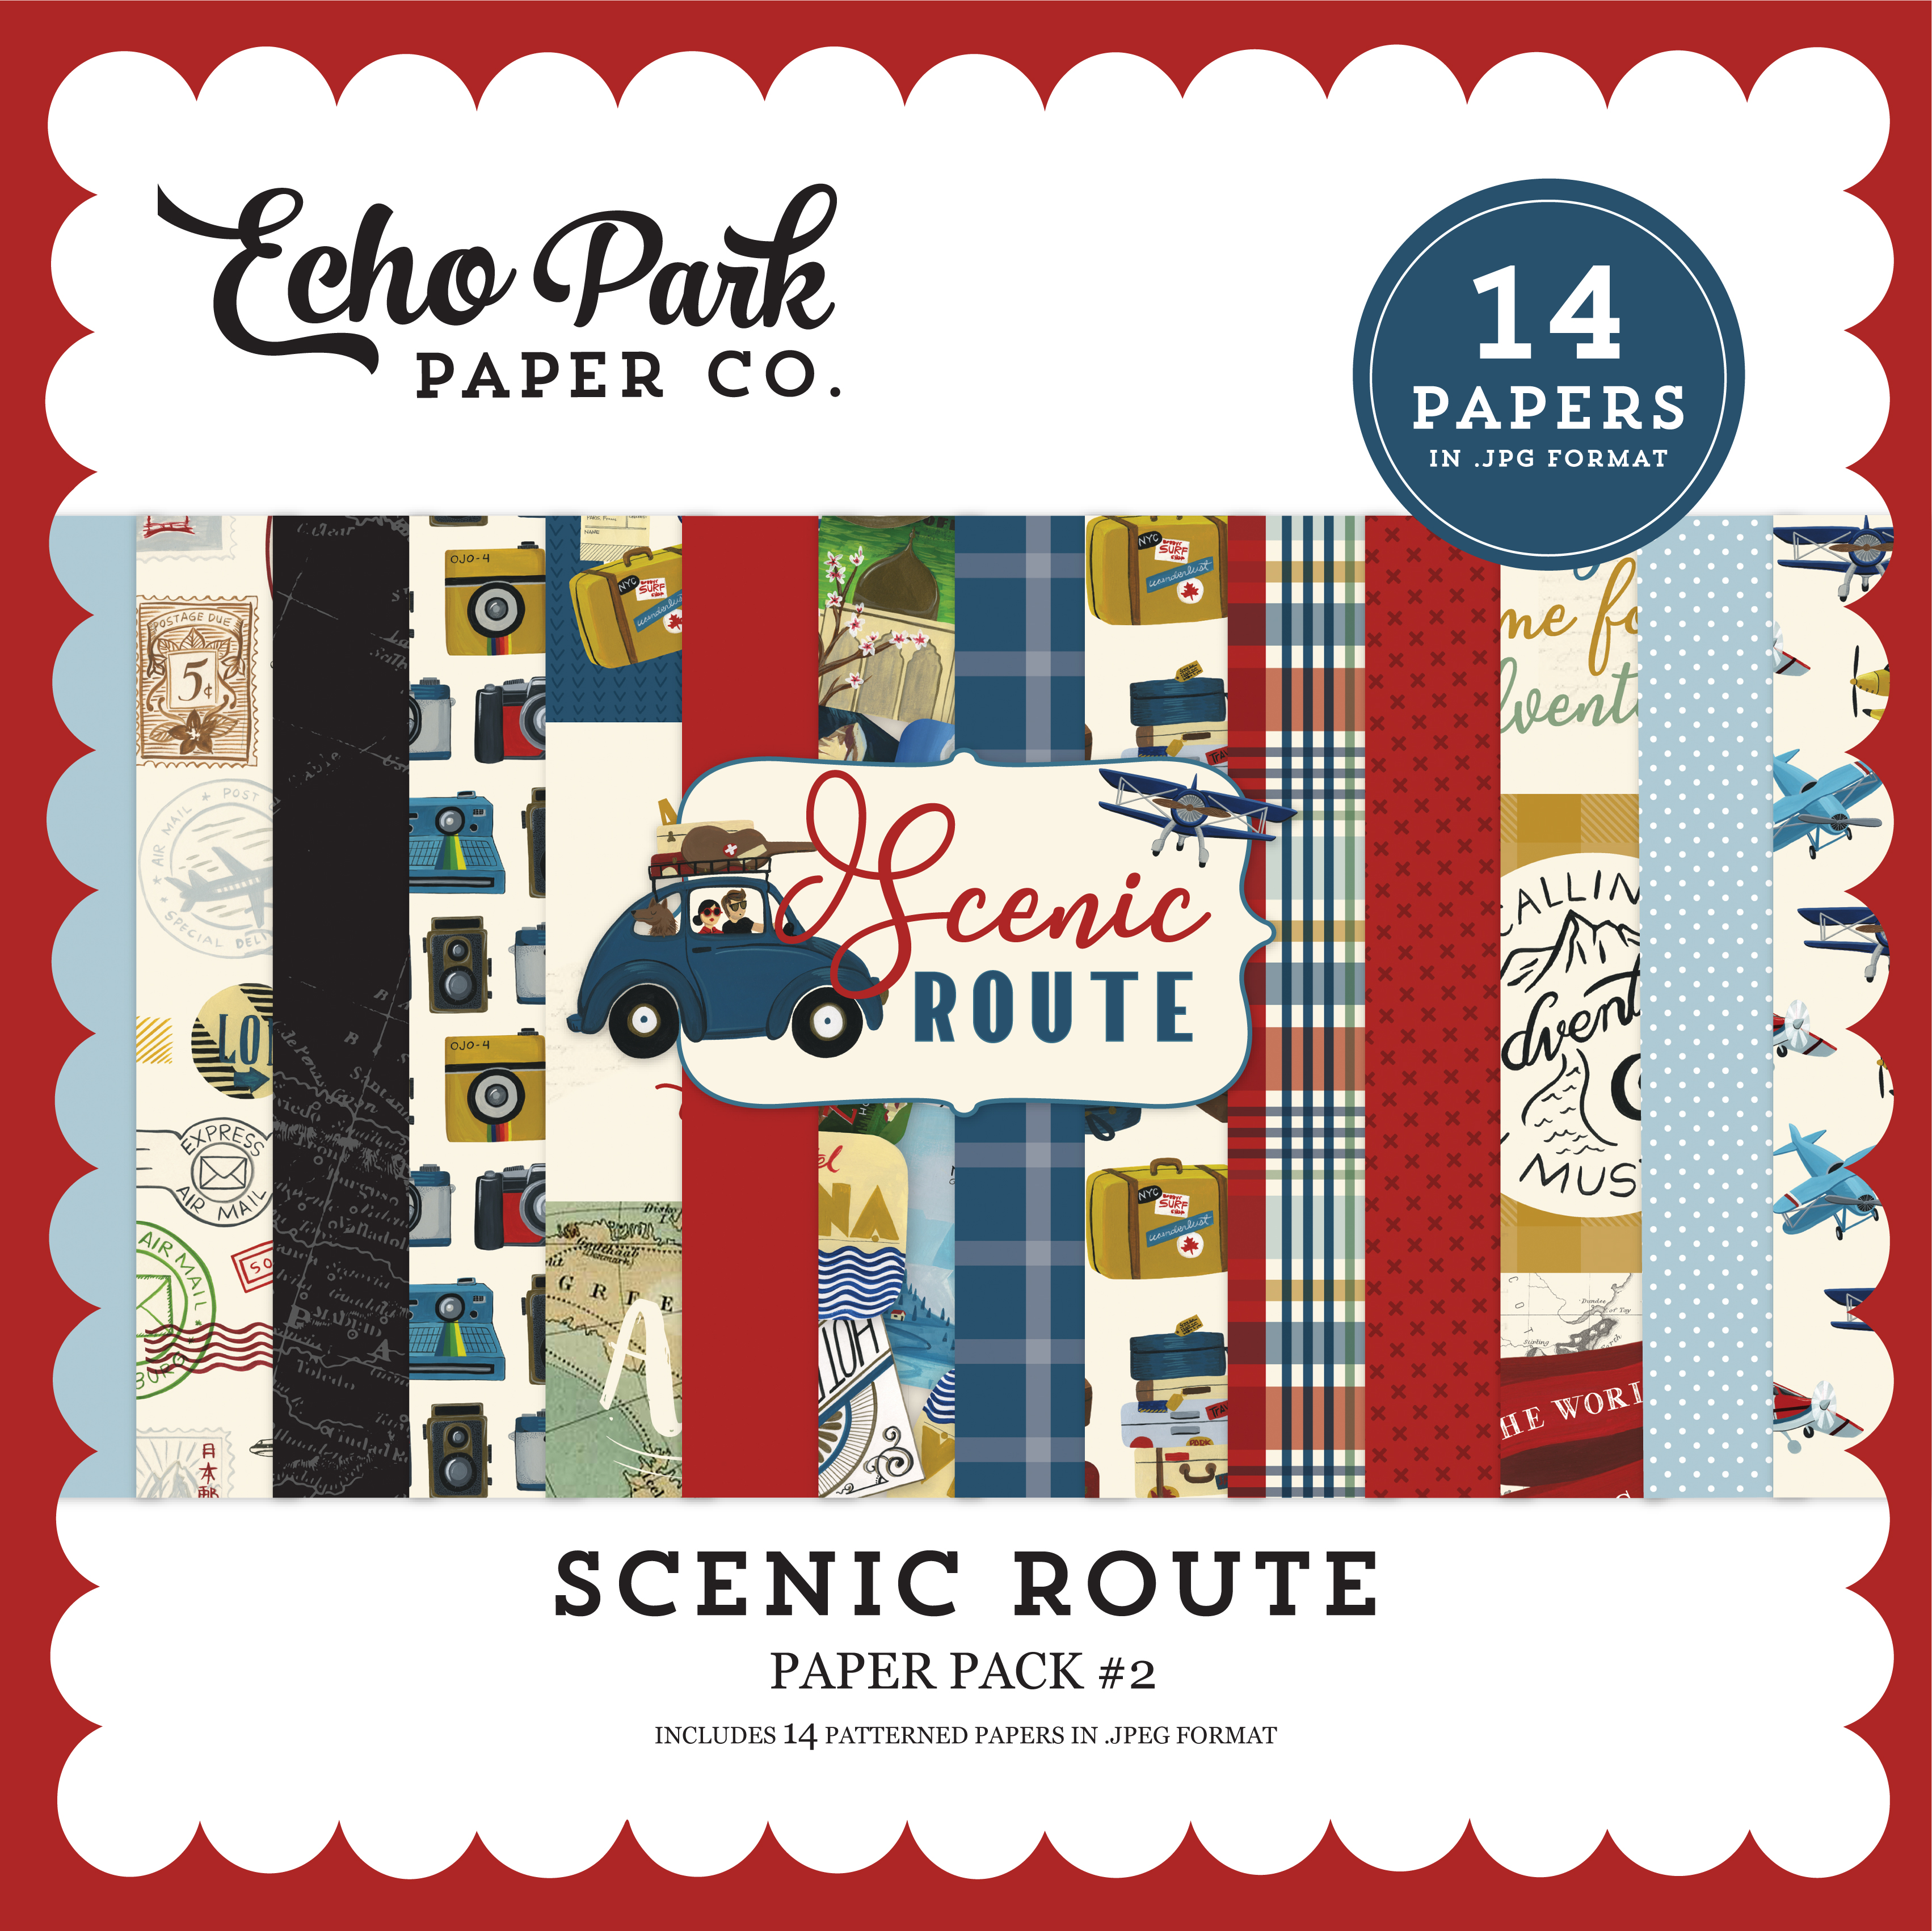 Scenic Route Paper Pack #2